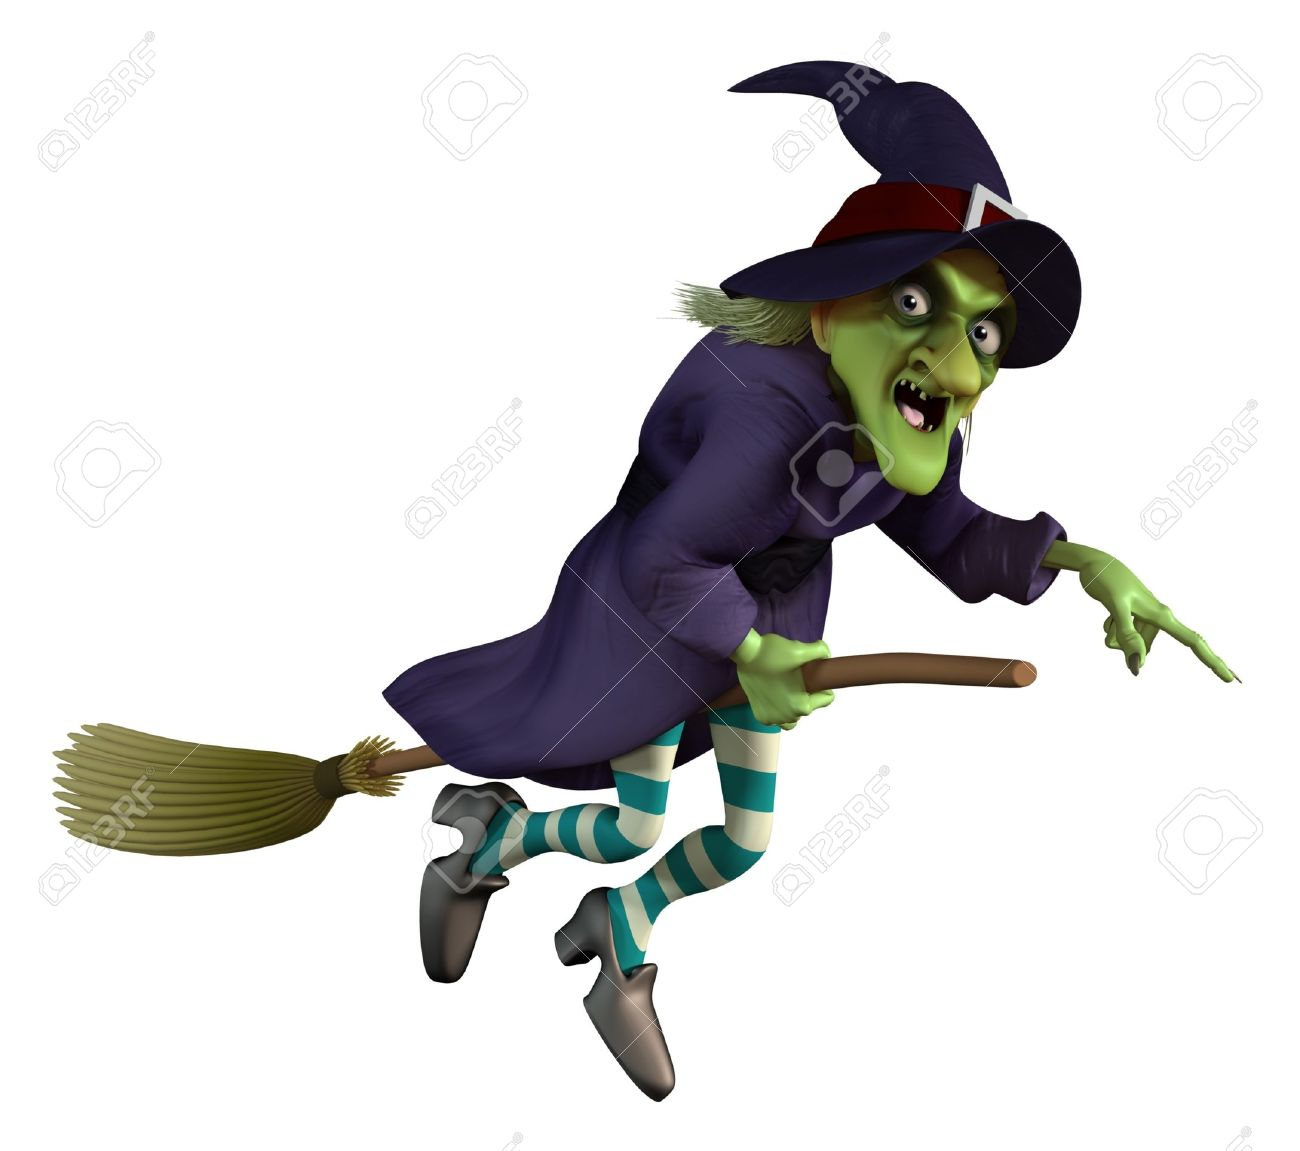 1300x1151 Flying Witch On A Broom Stock Photo, Picture And Royalty Free